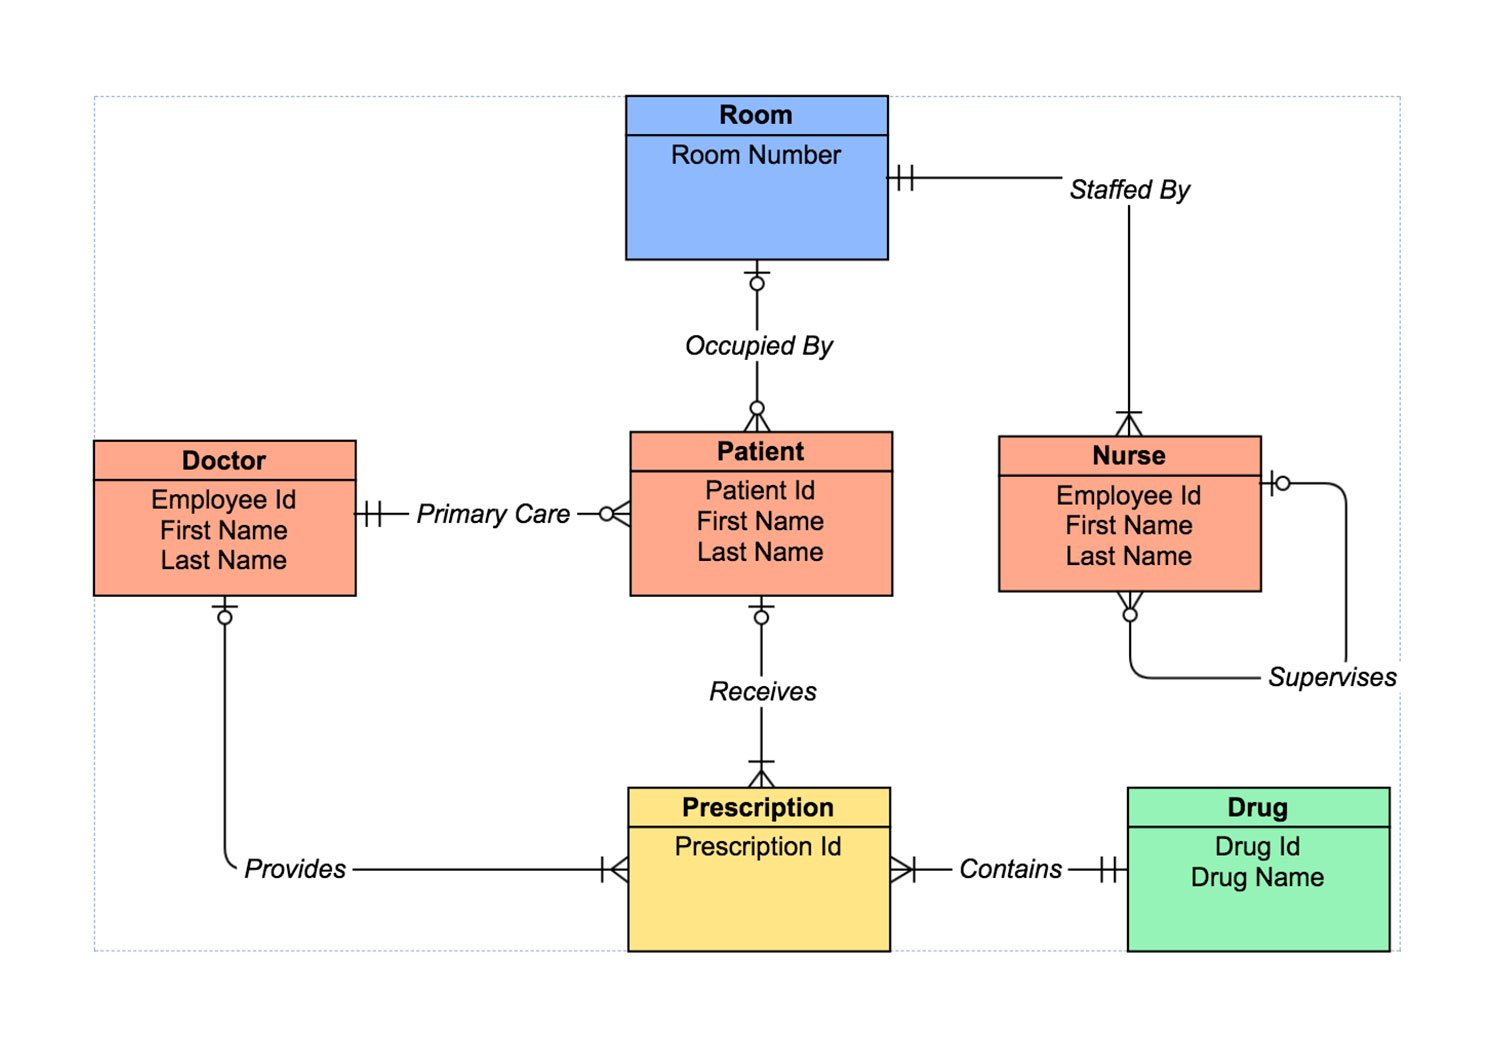 Er Diagram Tool | Draw Er Diagrams Online | Gliffy in The Entity Relationship Diagram